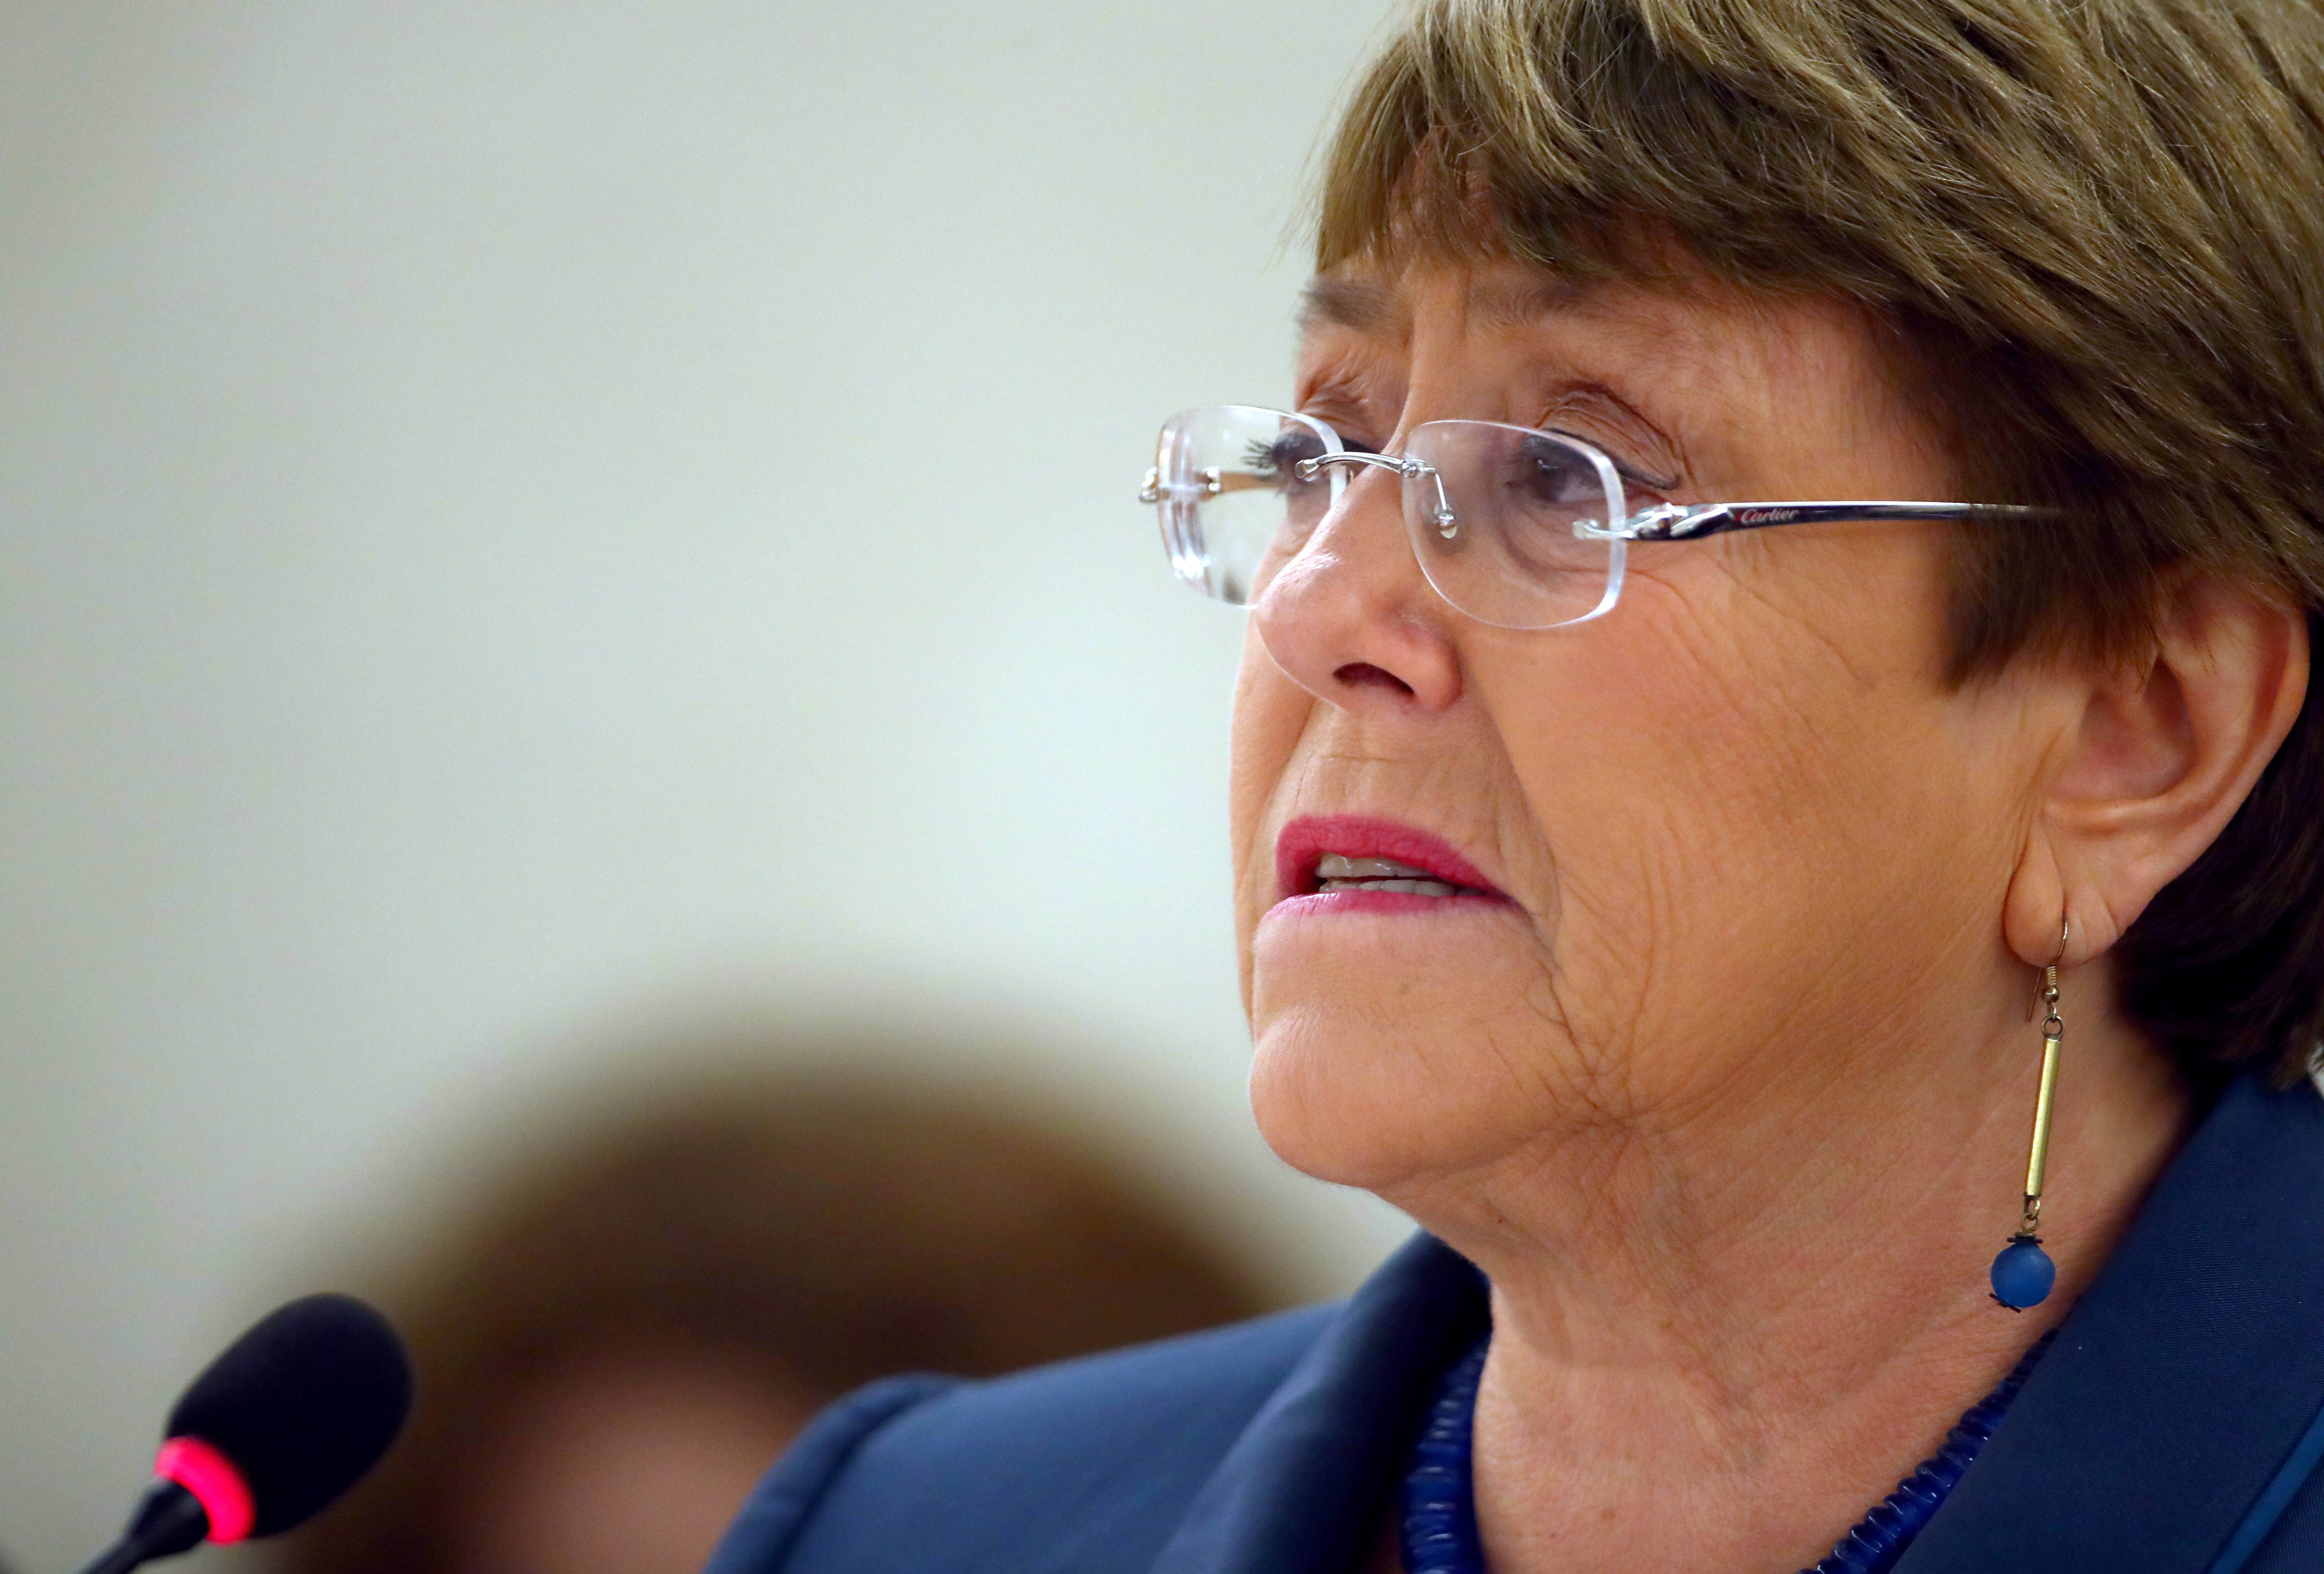 United Nations High Commissioner for Human Rights Michelle Bachelet attends a session of the Human Rights Council at the United Nations in Geneva, Switzerland, February 27, 2020. REUTERS/Denis Balibouse